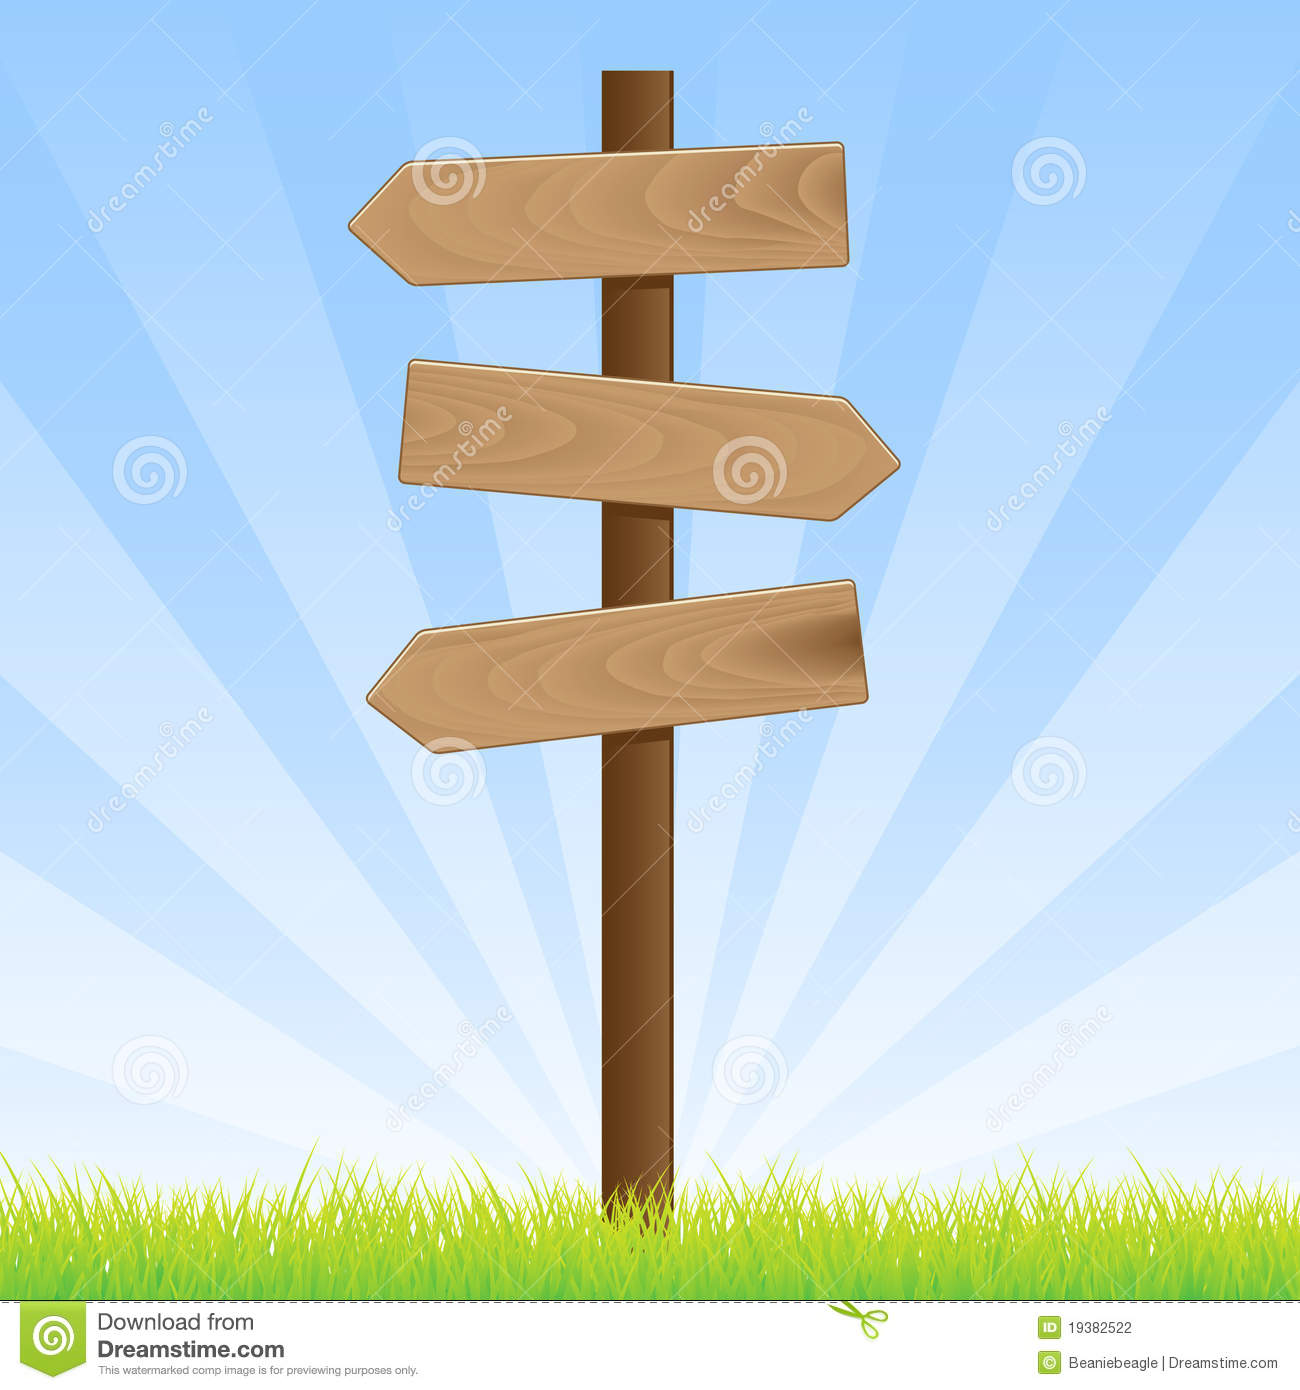 Post: Road Sign Post Stock Vector. Illustration Of Blue, Brown